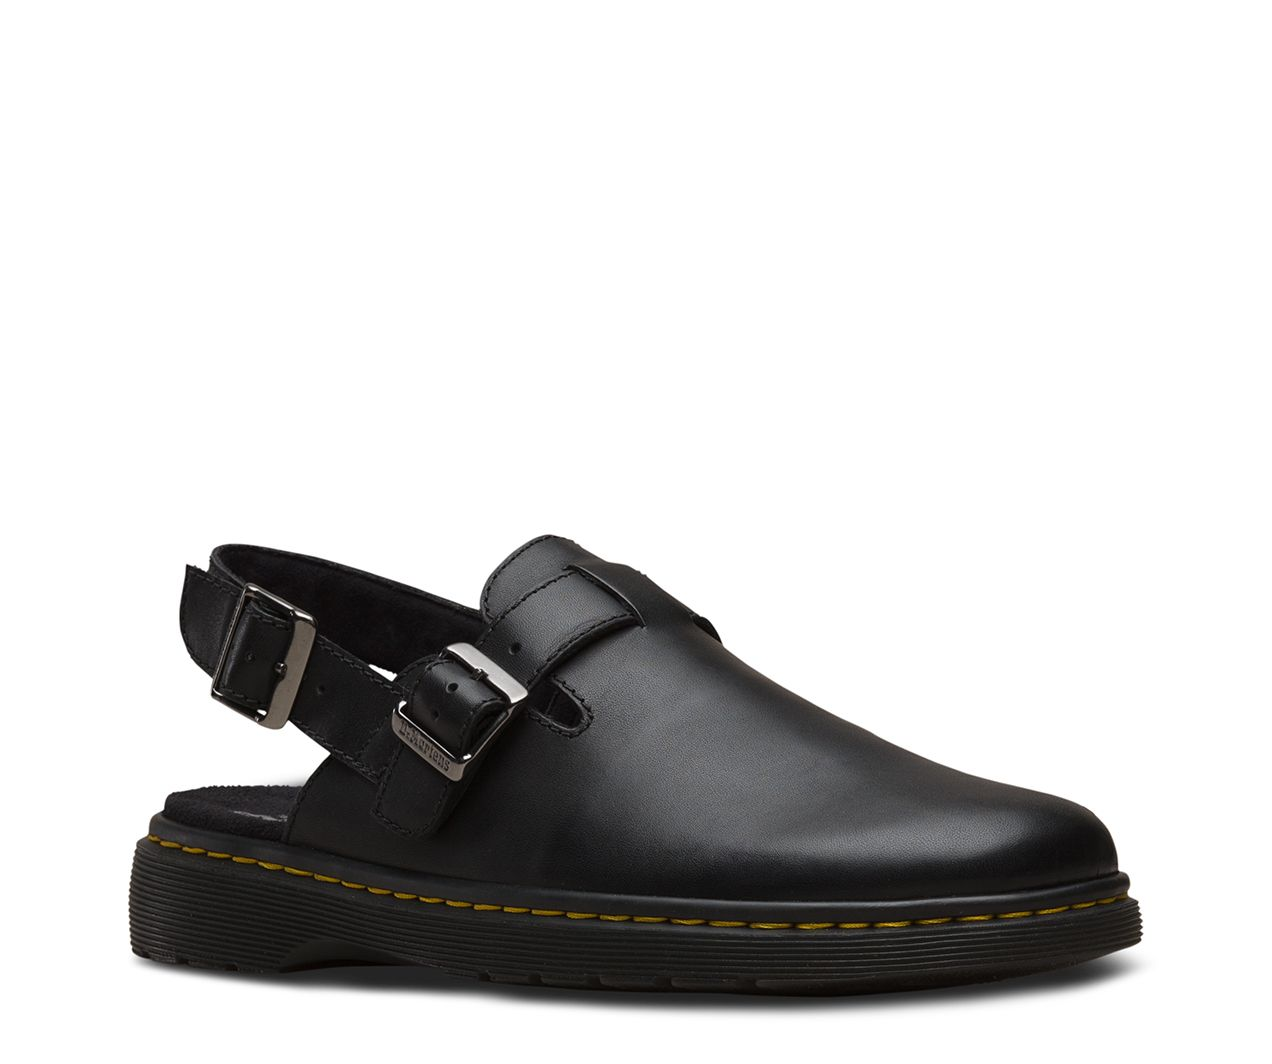 super specials new arrivals buying now Dr martens jorge westfield | S H O E S in 2019 | Shoes ...